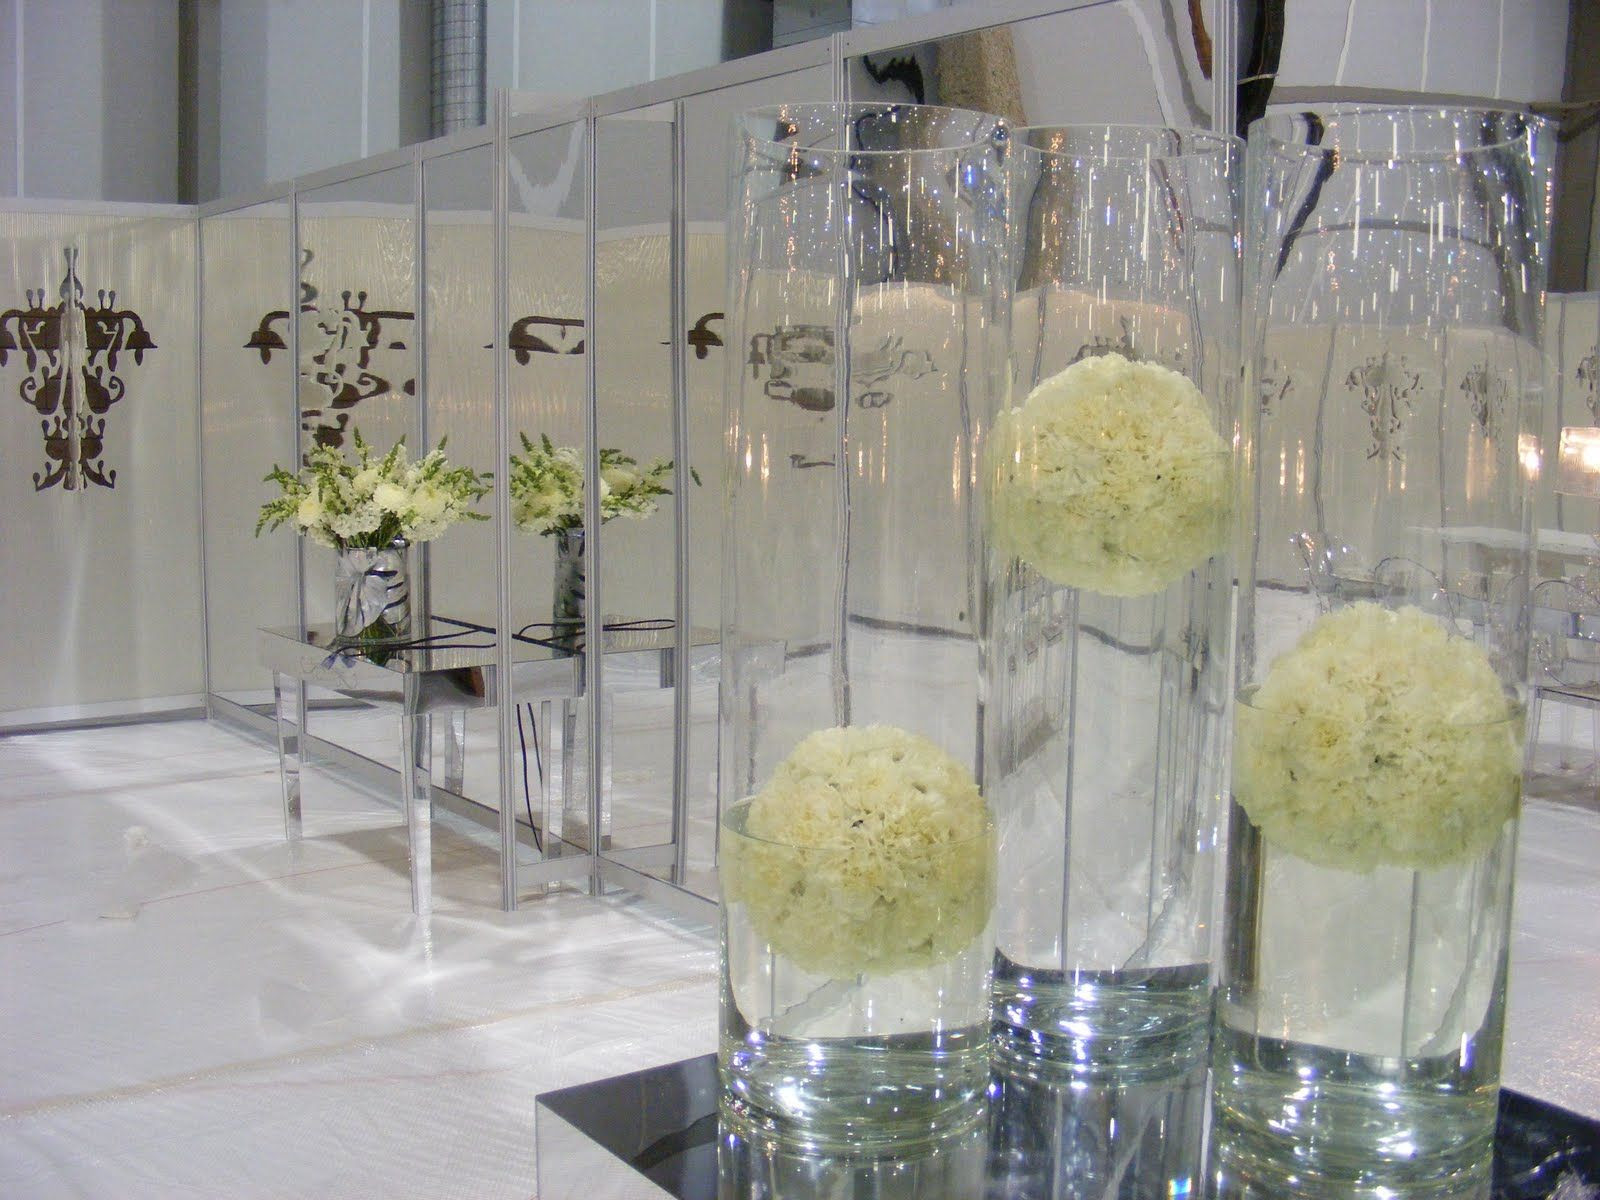 extra tall glass vases of we featured a trio of floating white flower balls in large glass for we featured a trio of floating white flower balls in large glass cylinder vases for a sleek modern and sophisticated style